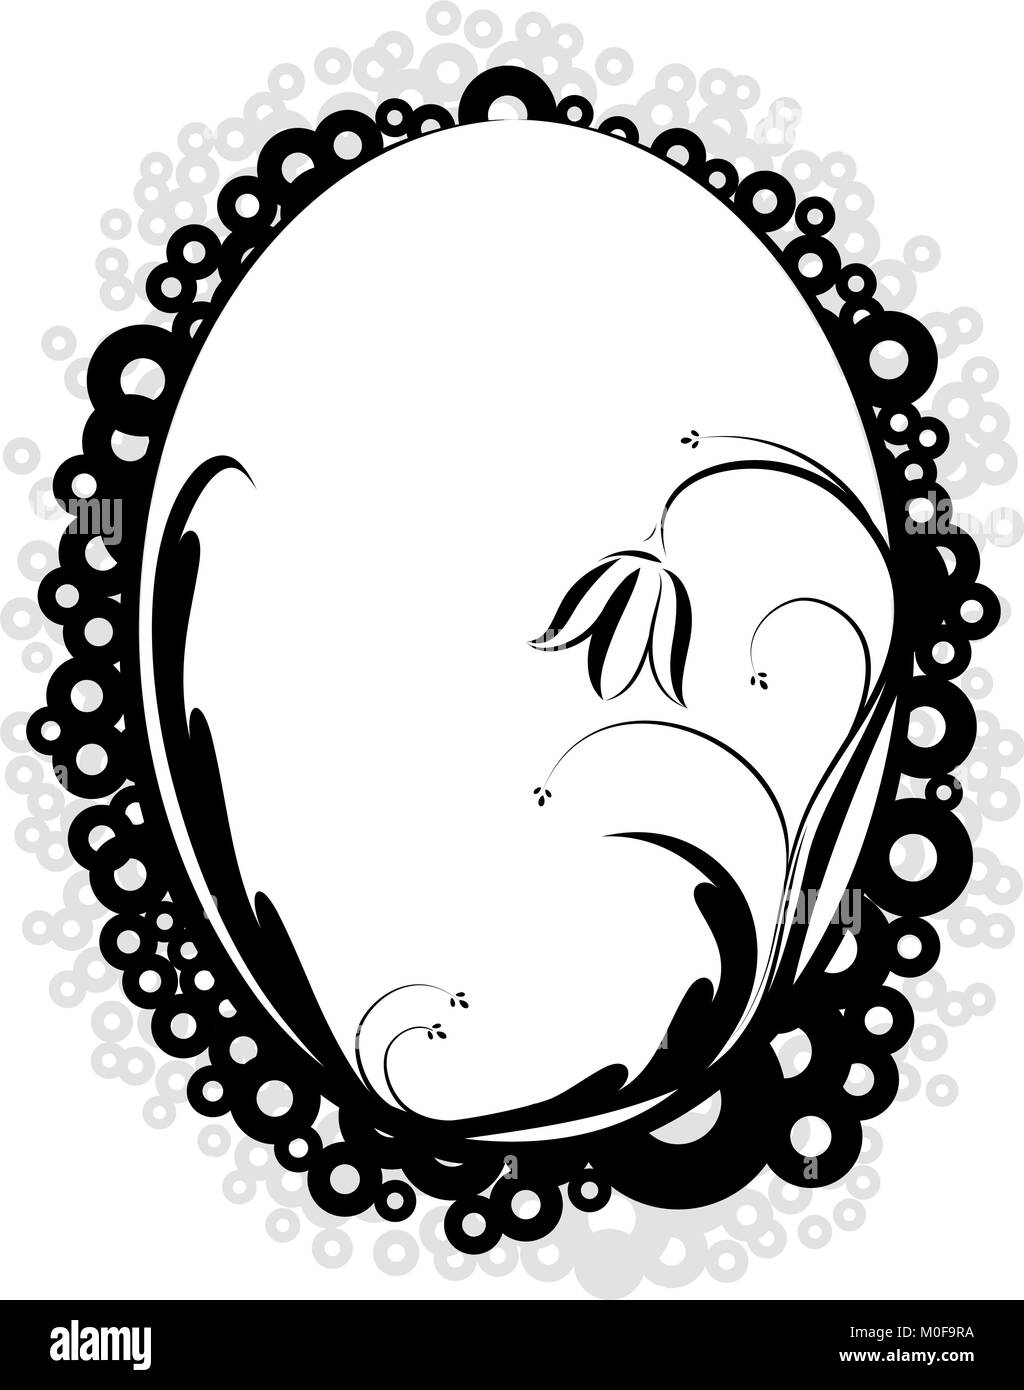 Oval Cartouche Stock Photos & Oval Cartouche Stock Images - Page 2 ...